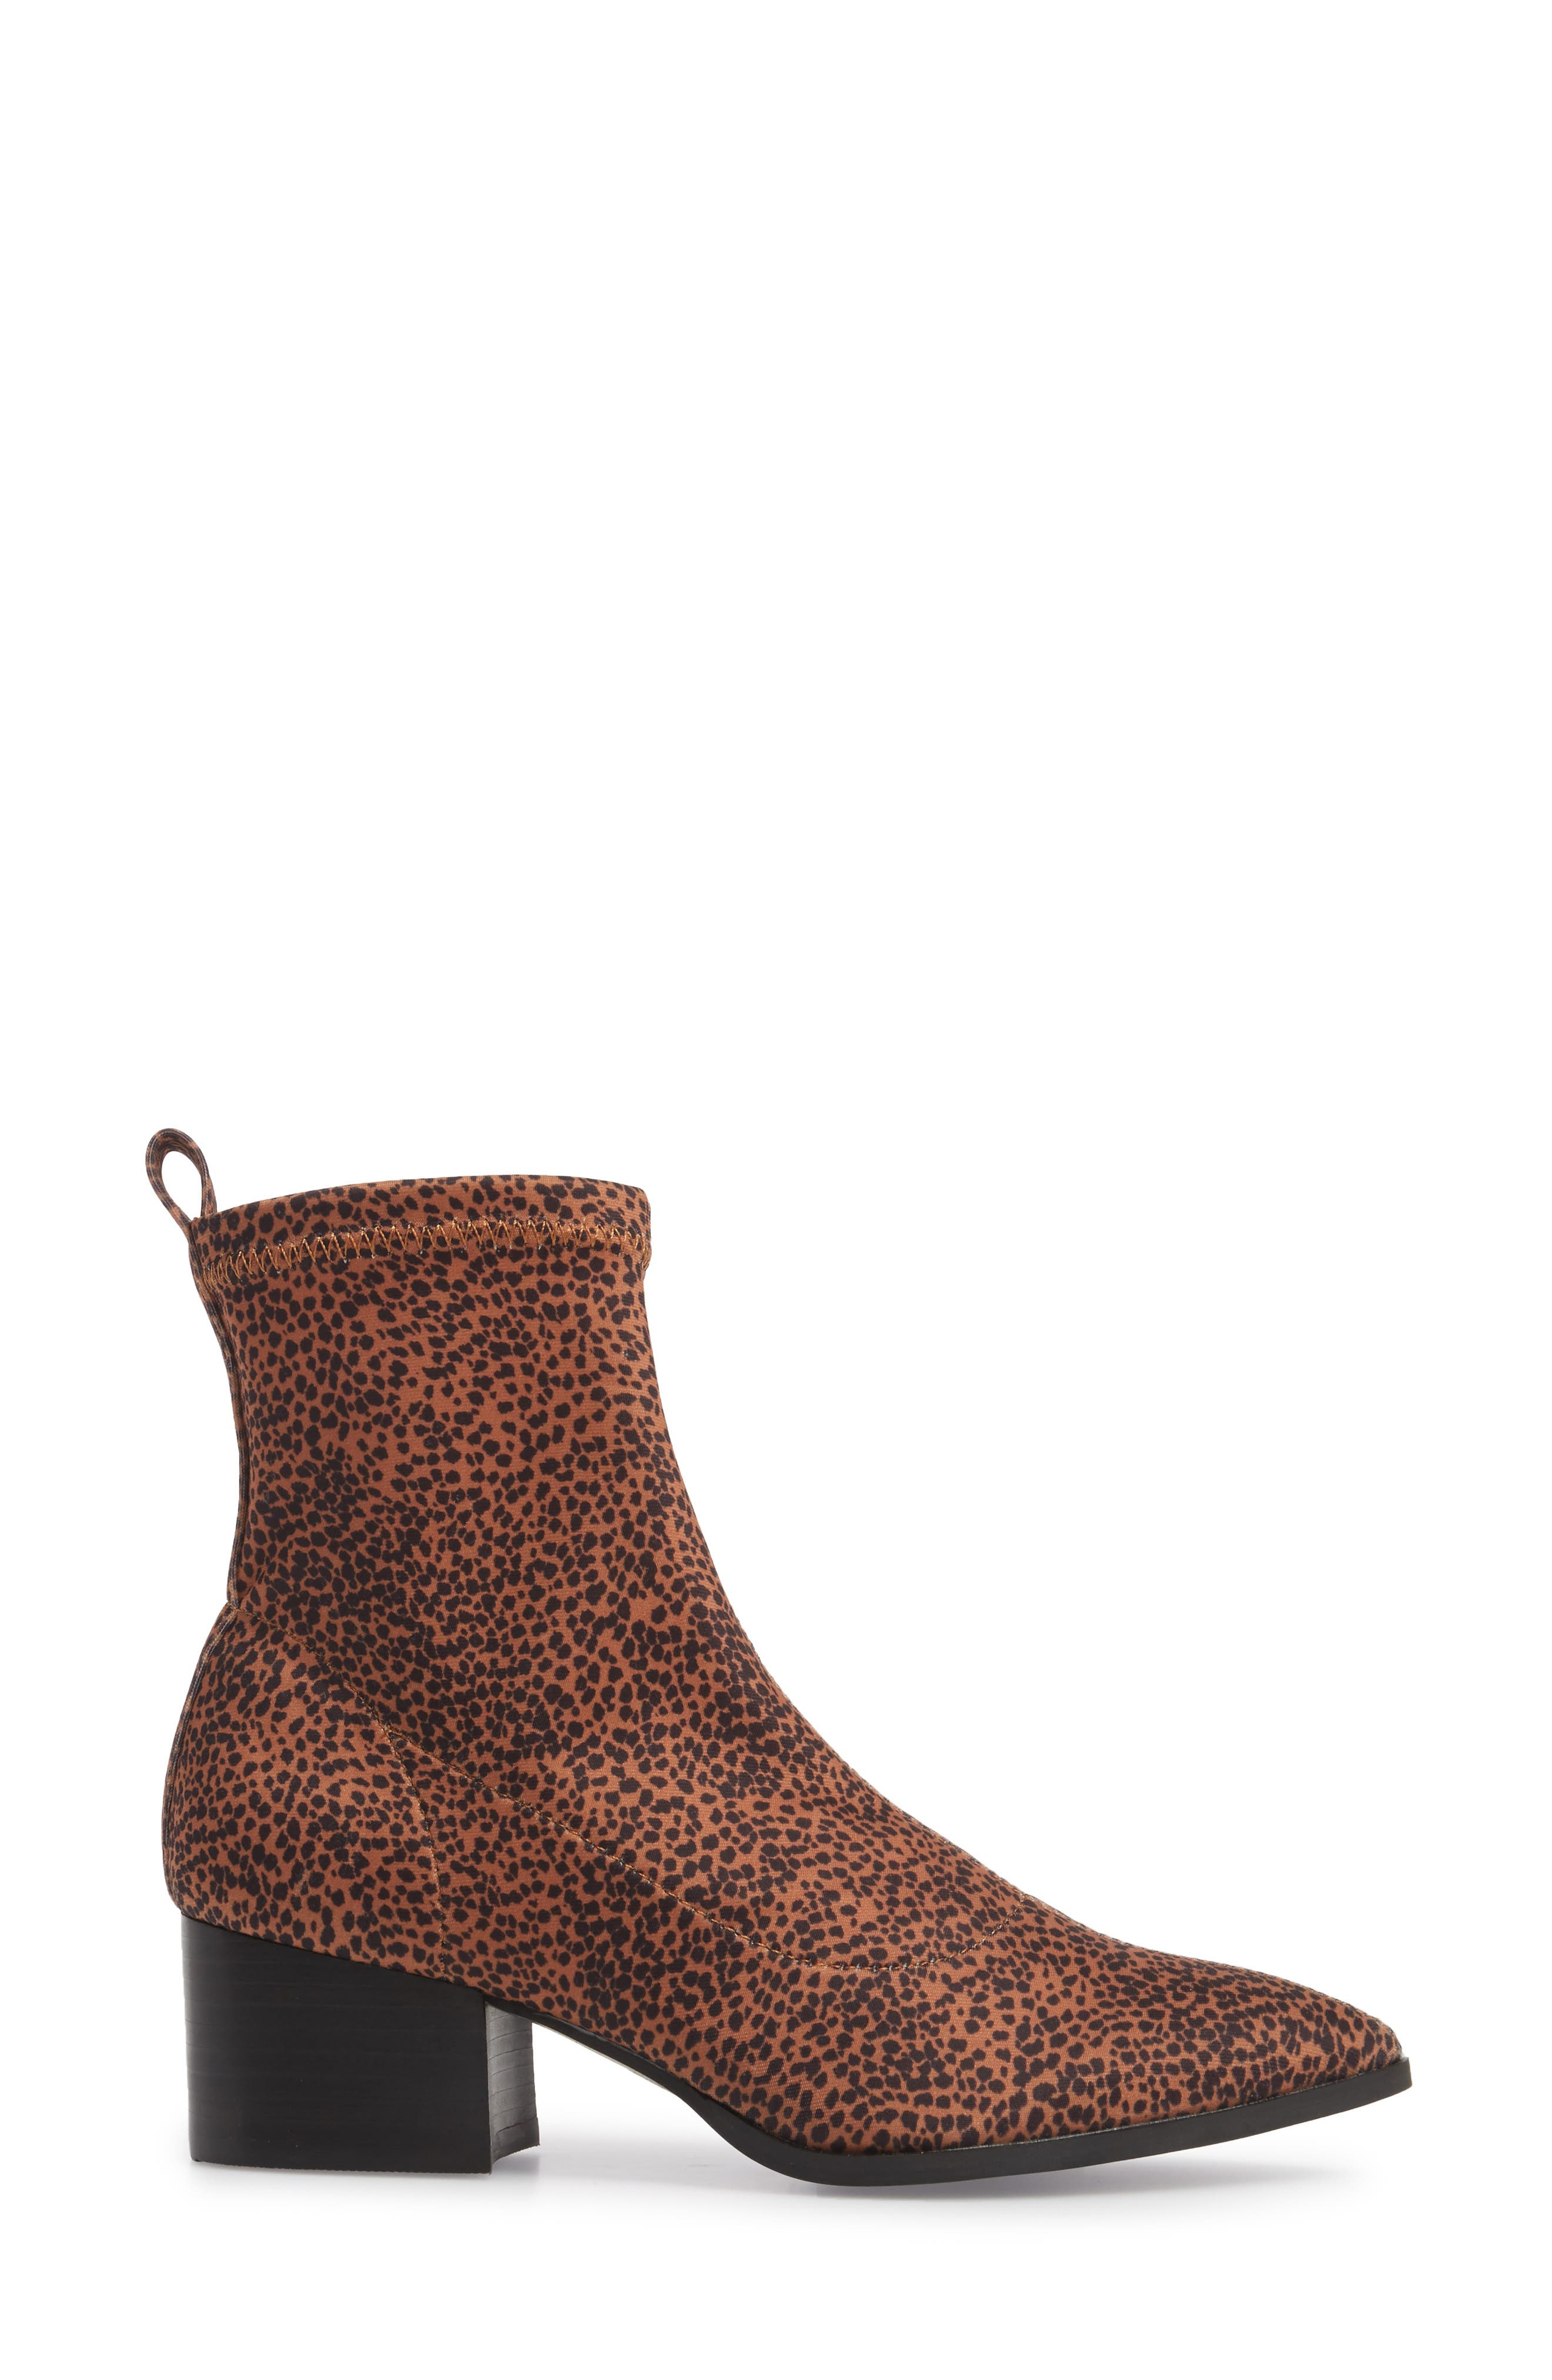 Amuse Society x Matisse Liliana Sock Bootie,                             Alternate thumbnail 3, color,                             Brown Stretch Fabric